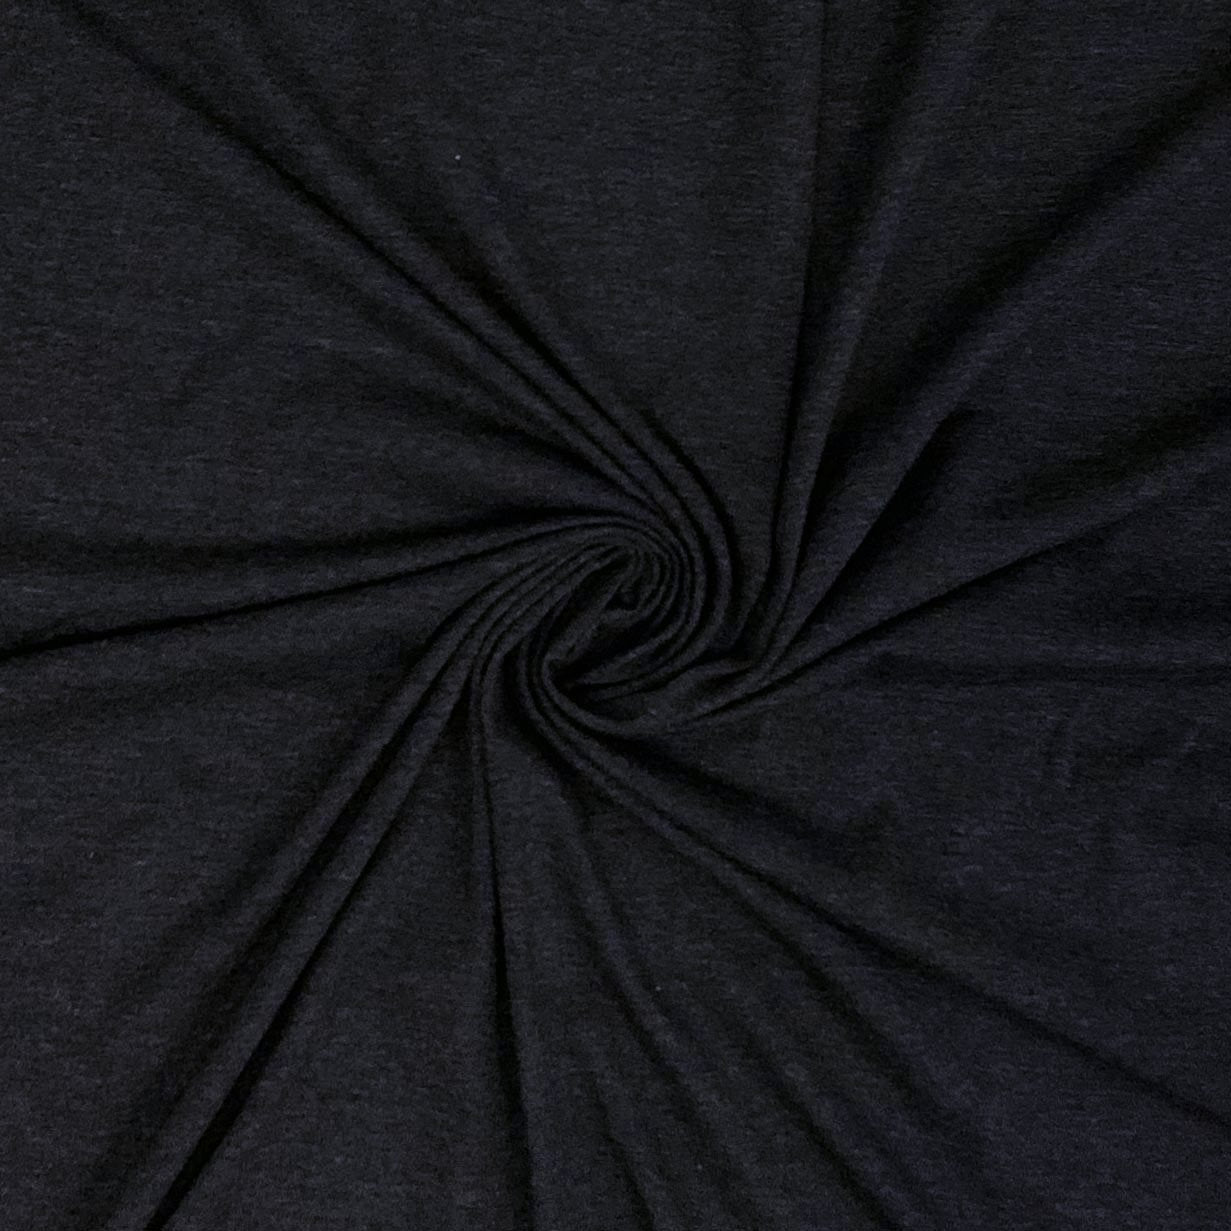 Cotton Spandex Solid Two-Tone - Dark Charcoal